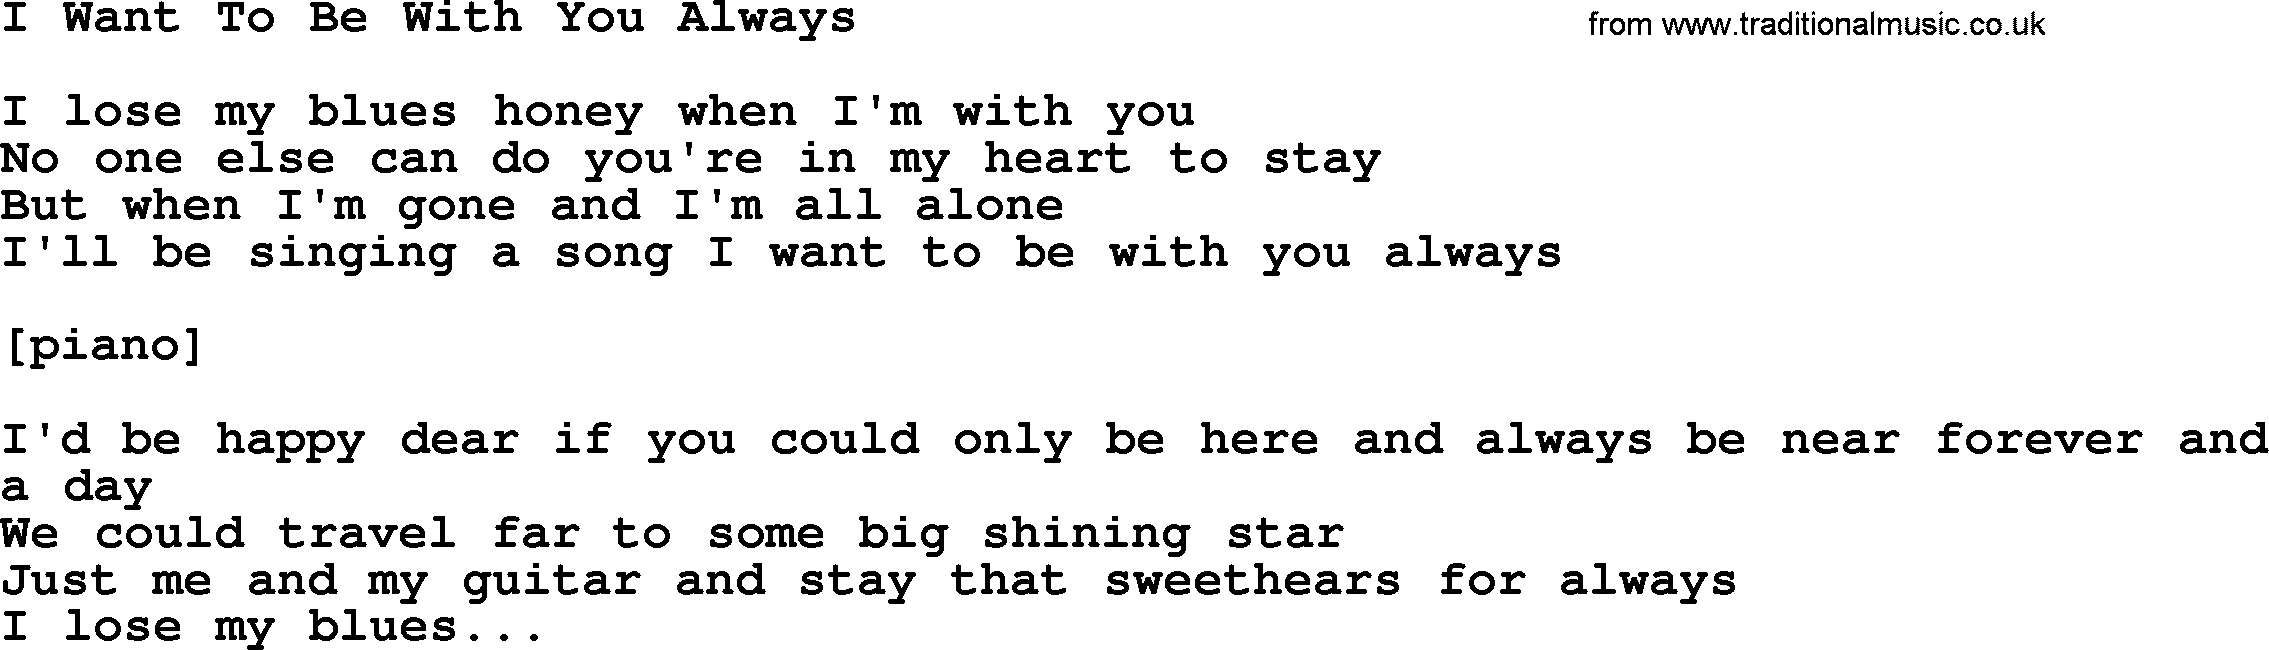 Willie Nelson song: I Want To Be With You Always, lyrics